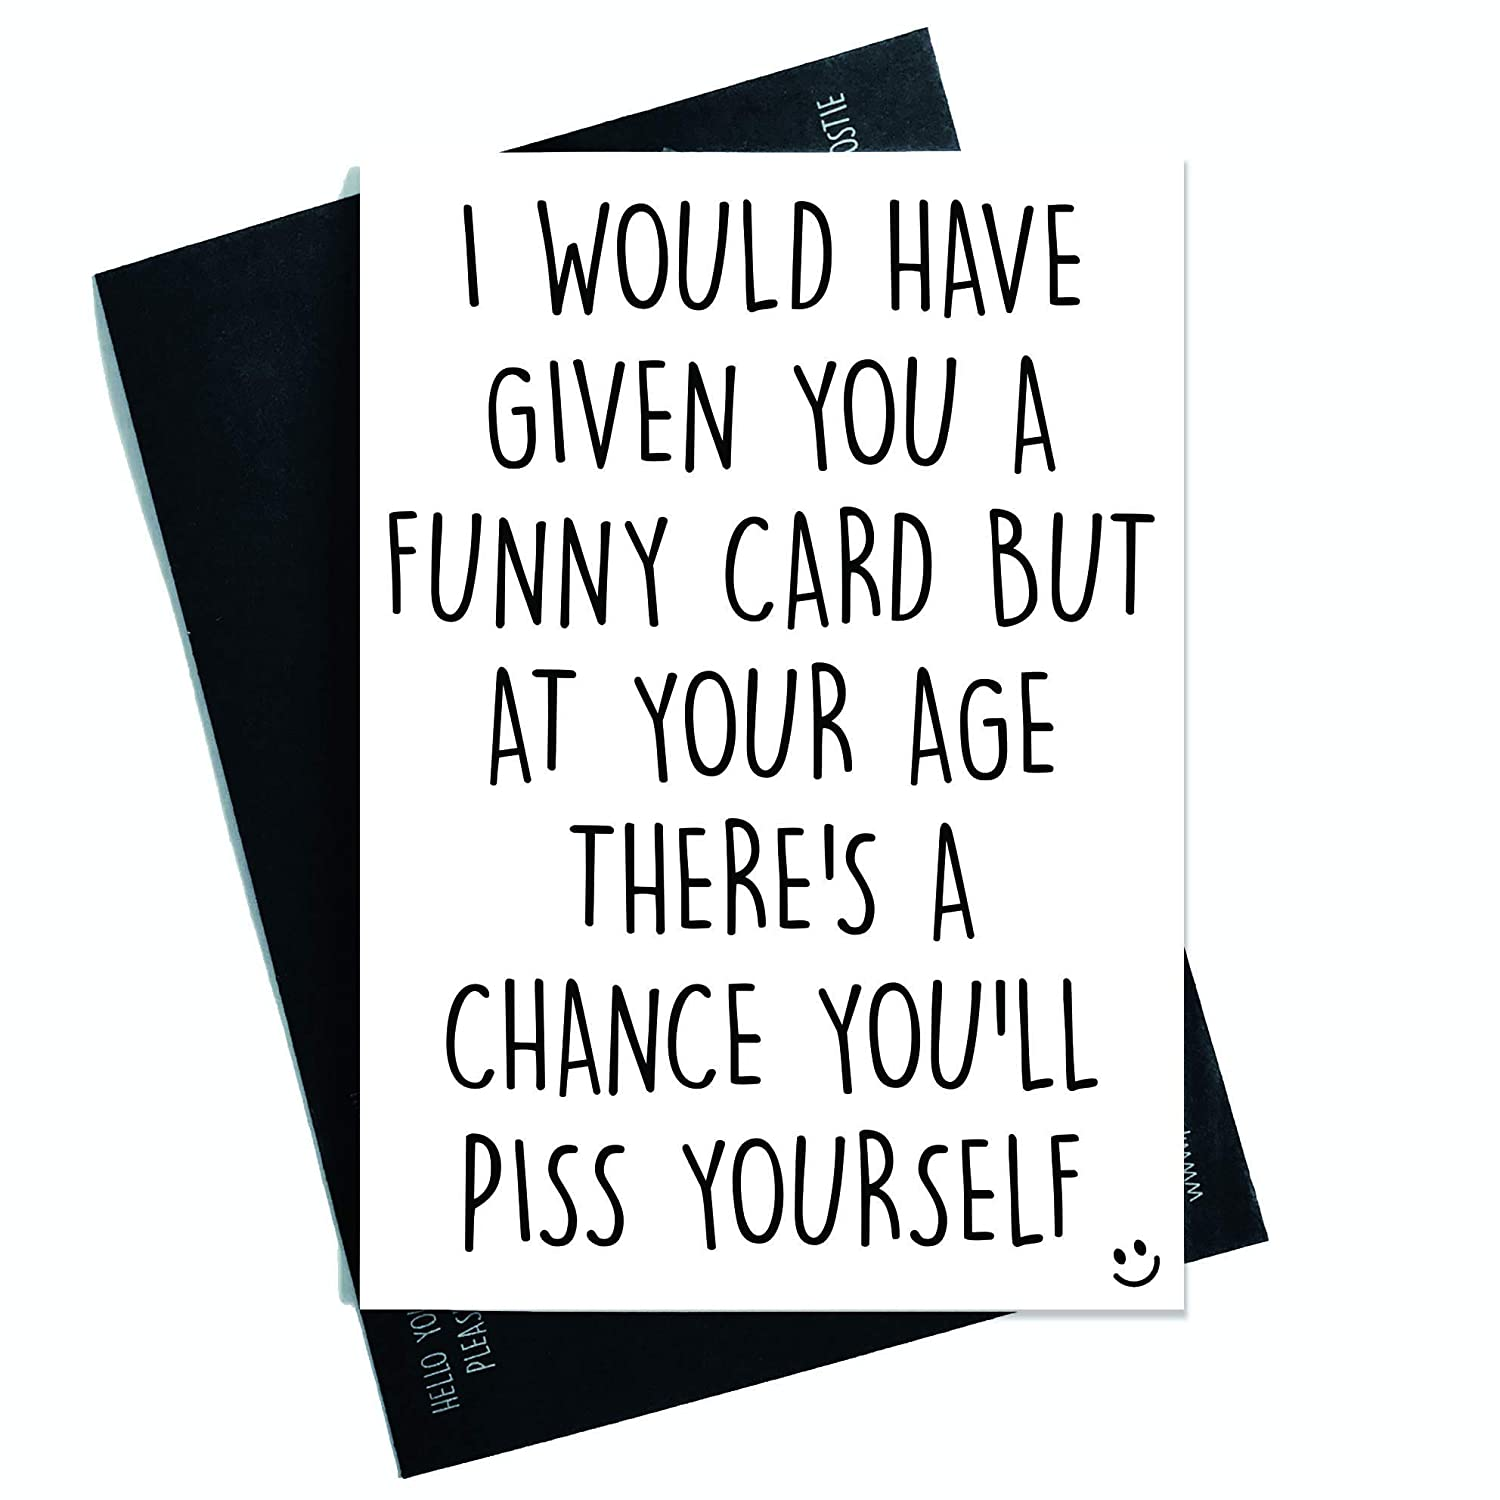 Funny Cards Rude Birthday Card 40th 50th 60th 70th Sister Mum Greeting Witty Humour Laughter Banter Offensive Joke Fun PC374 Amazoncouk